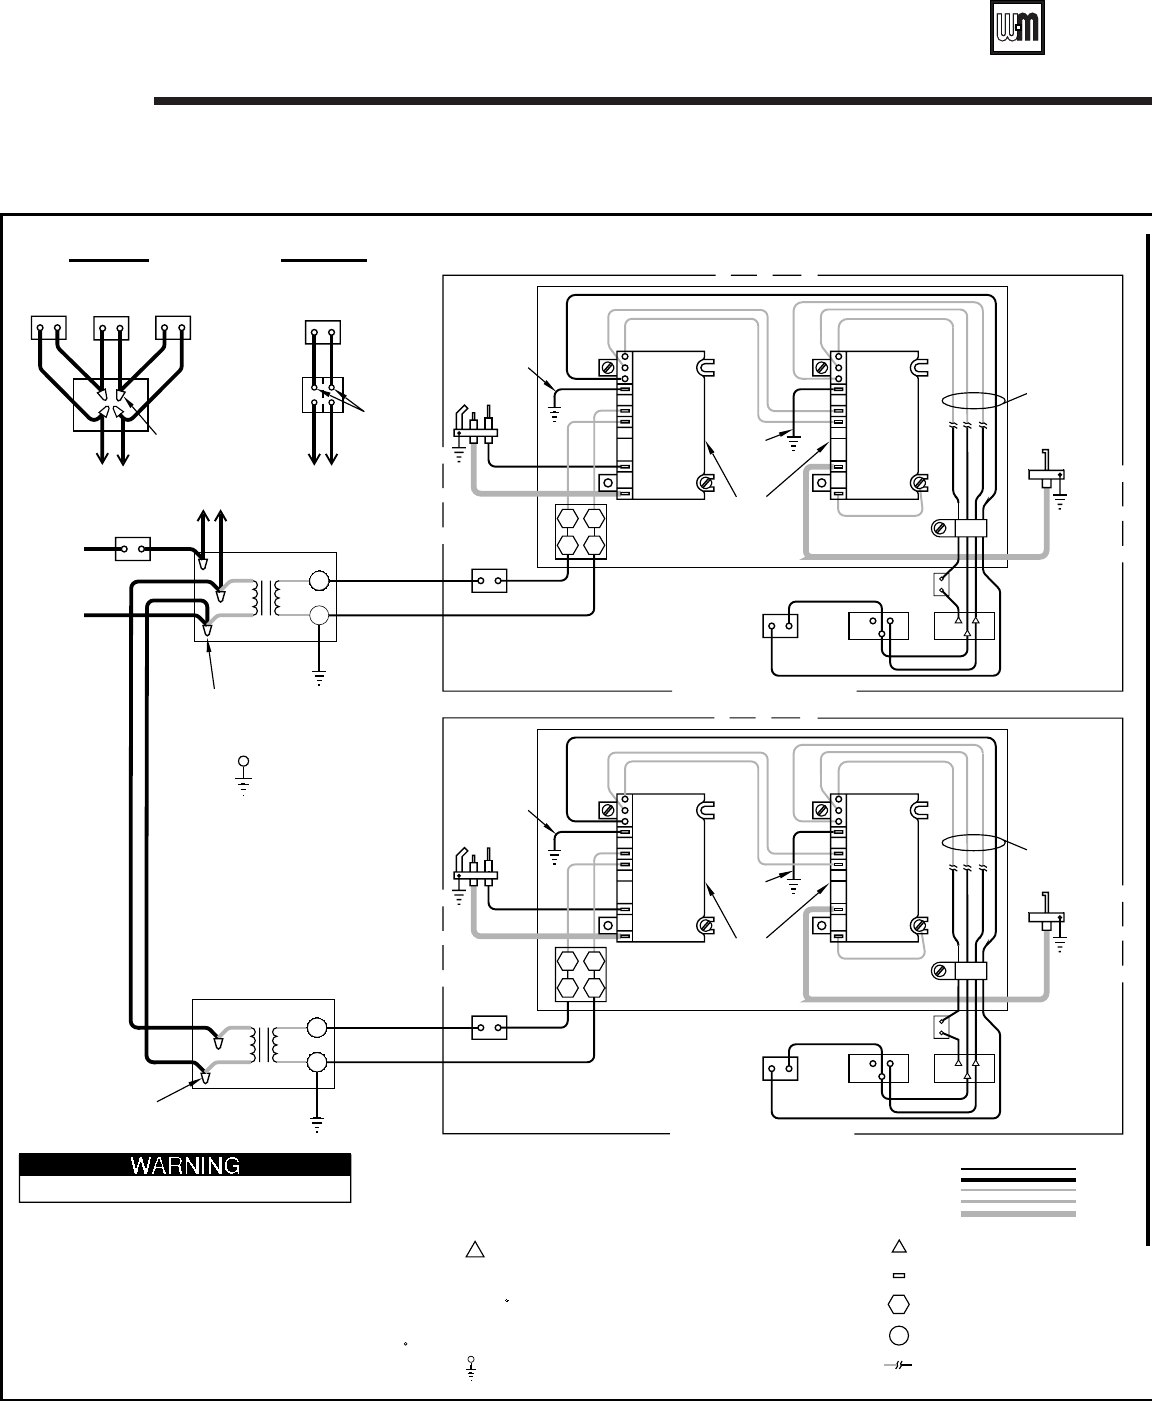 Schematic Wiring Diagram Weil Mclain Lwco Schematics Page 6 Of Boiler Lgb 23 User Guide Manualsonline Com Boilers Diagrams And Manuals